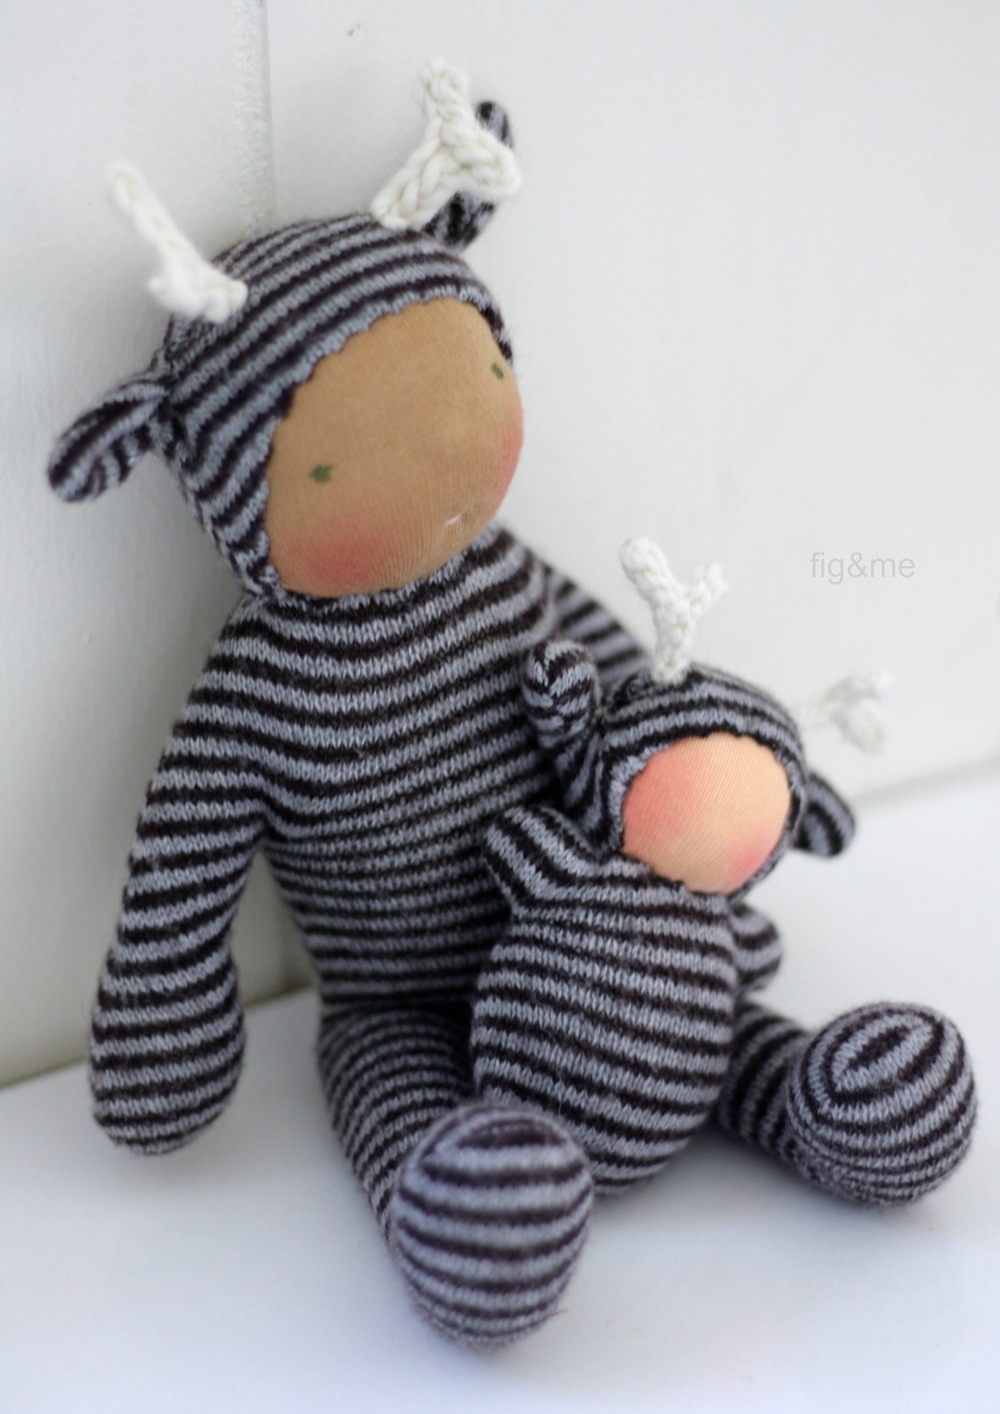 Wee Babies in wool and stripes, by Fig and Me.